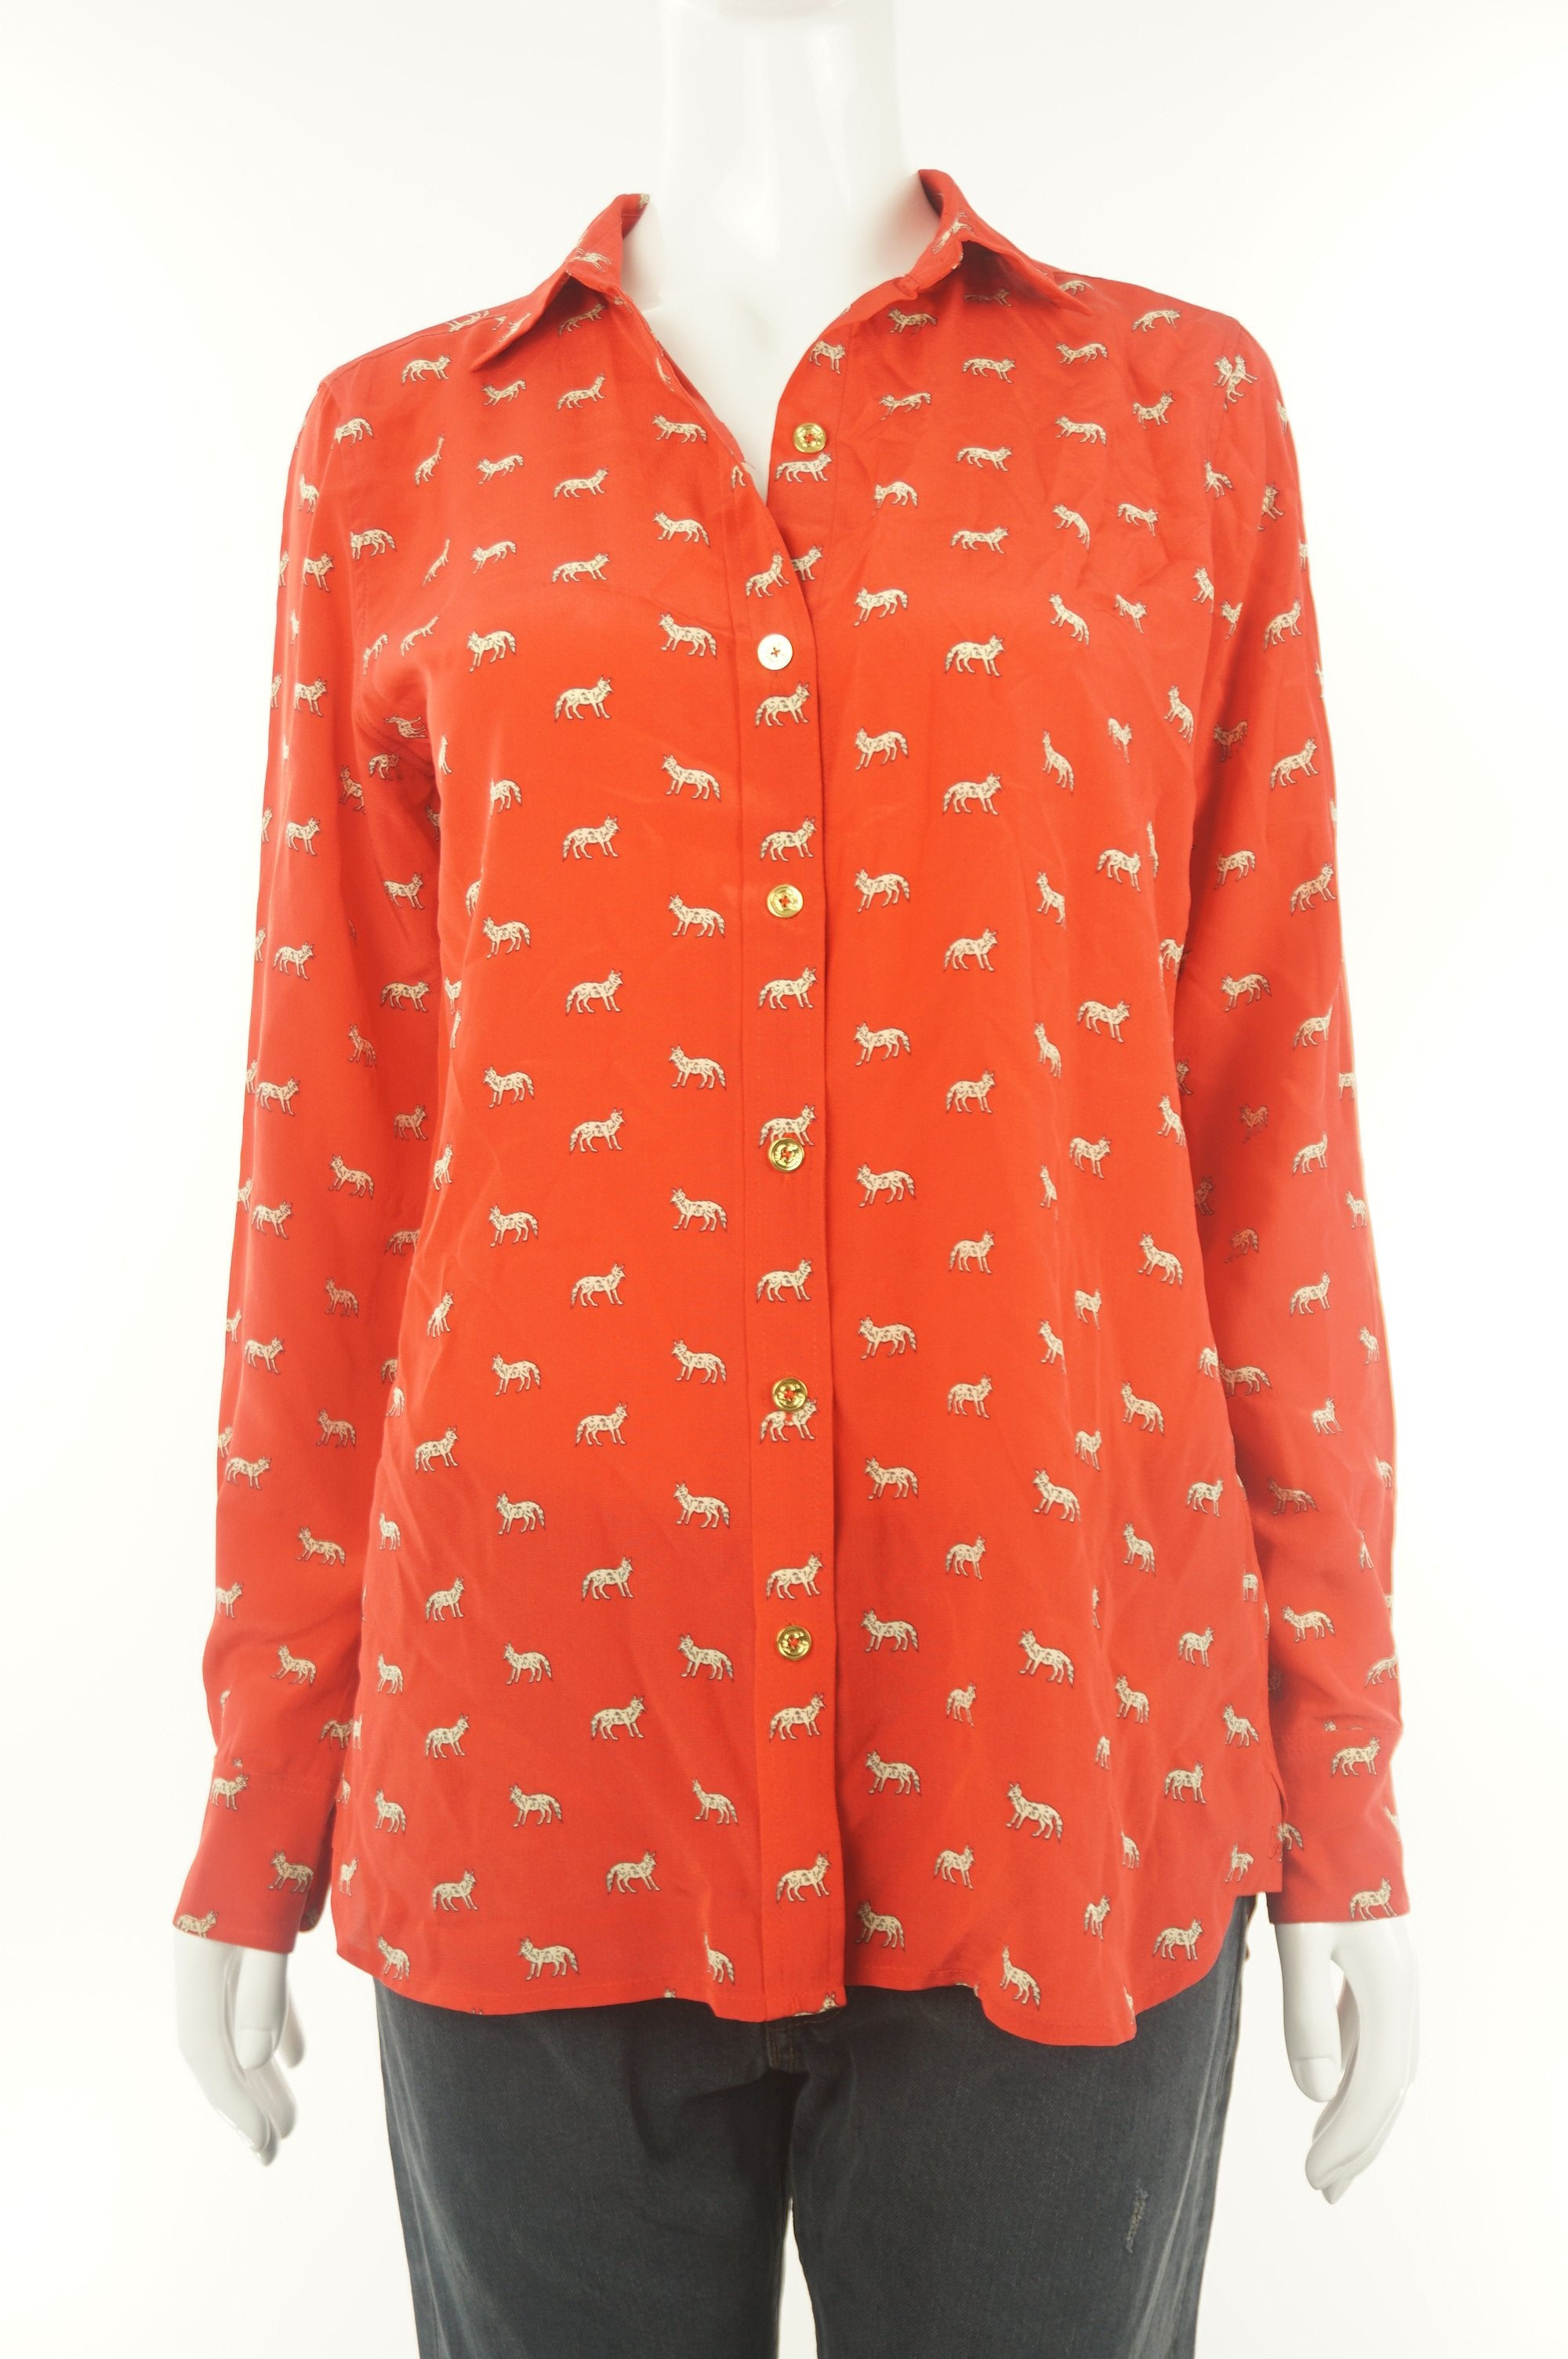 C. Wonder Silk Button Up Shirt Top, Pure silk shirt with cute animal print., Red, 100% silk, women's Tops, Jackets & Coats, women's Red Tops, Jackets & Coats, C. Wonder women's Tops, Jackets & Coats, women's silk shirt, women's button up shirt, women's button up loose fitting blouse